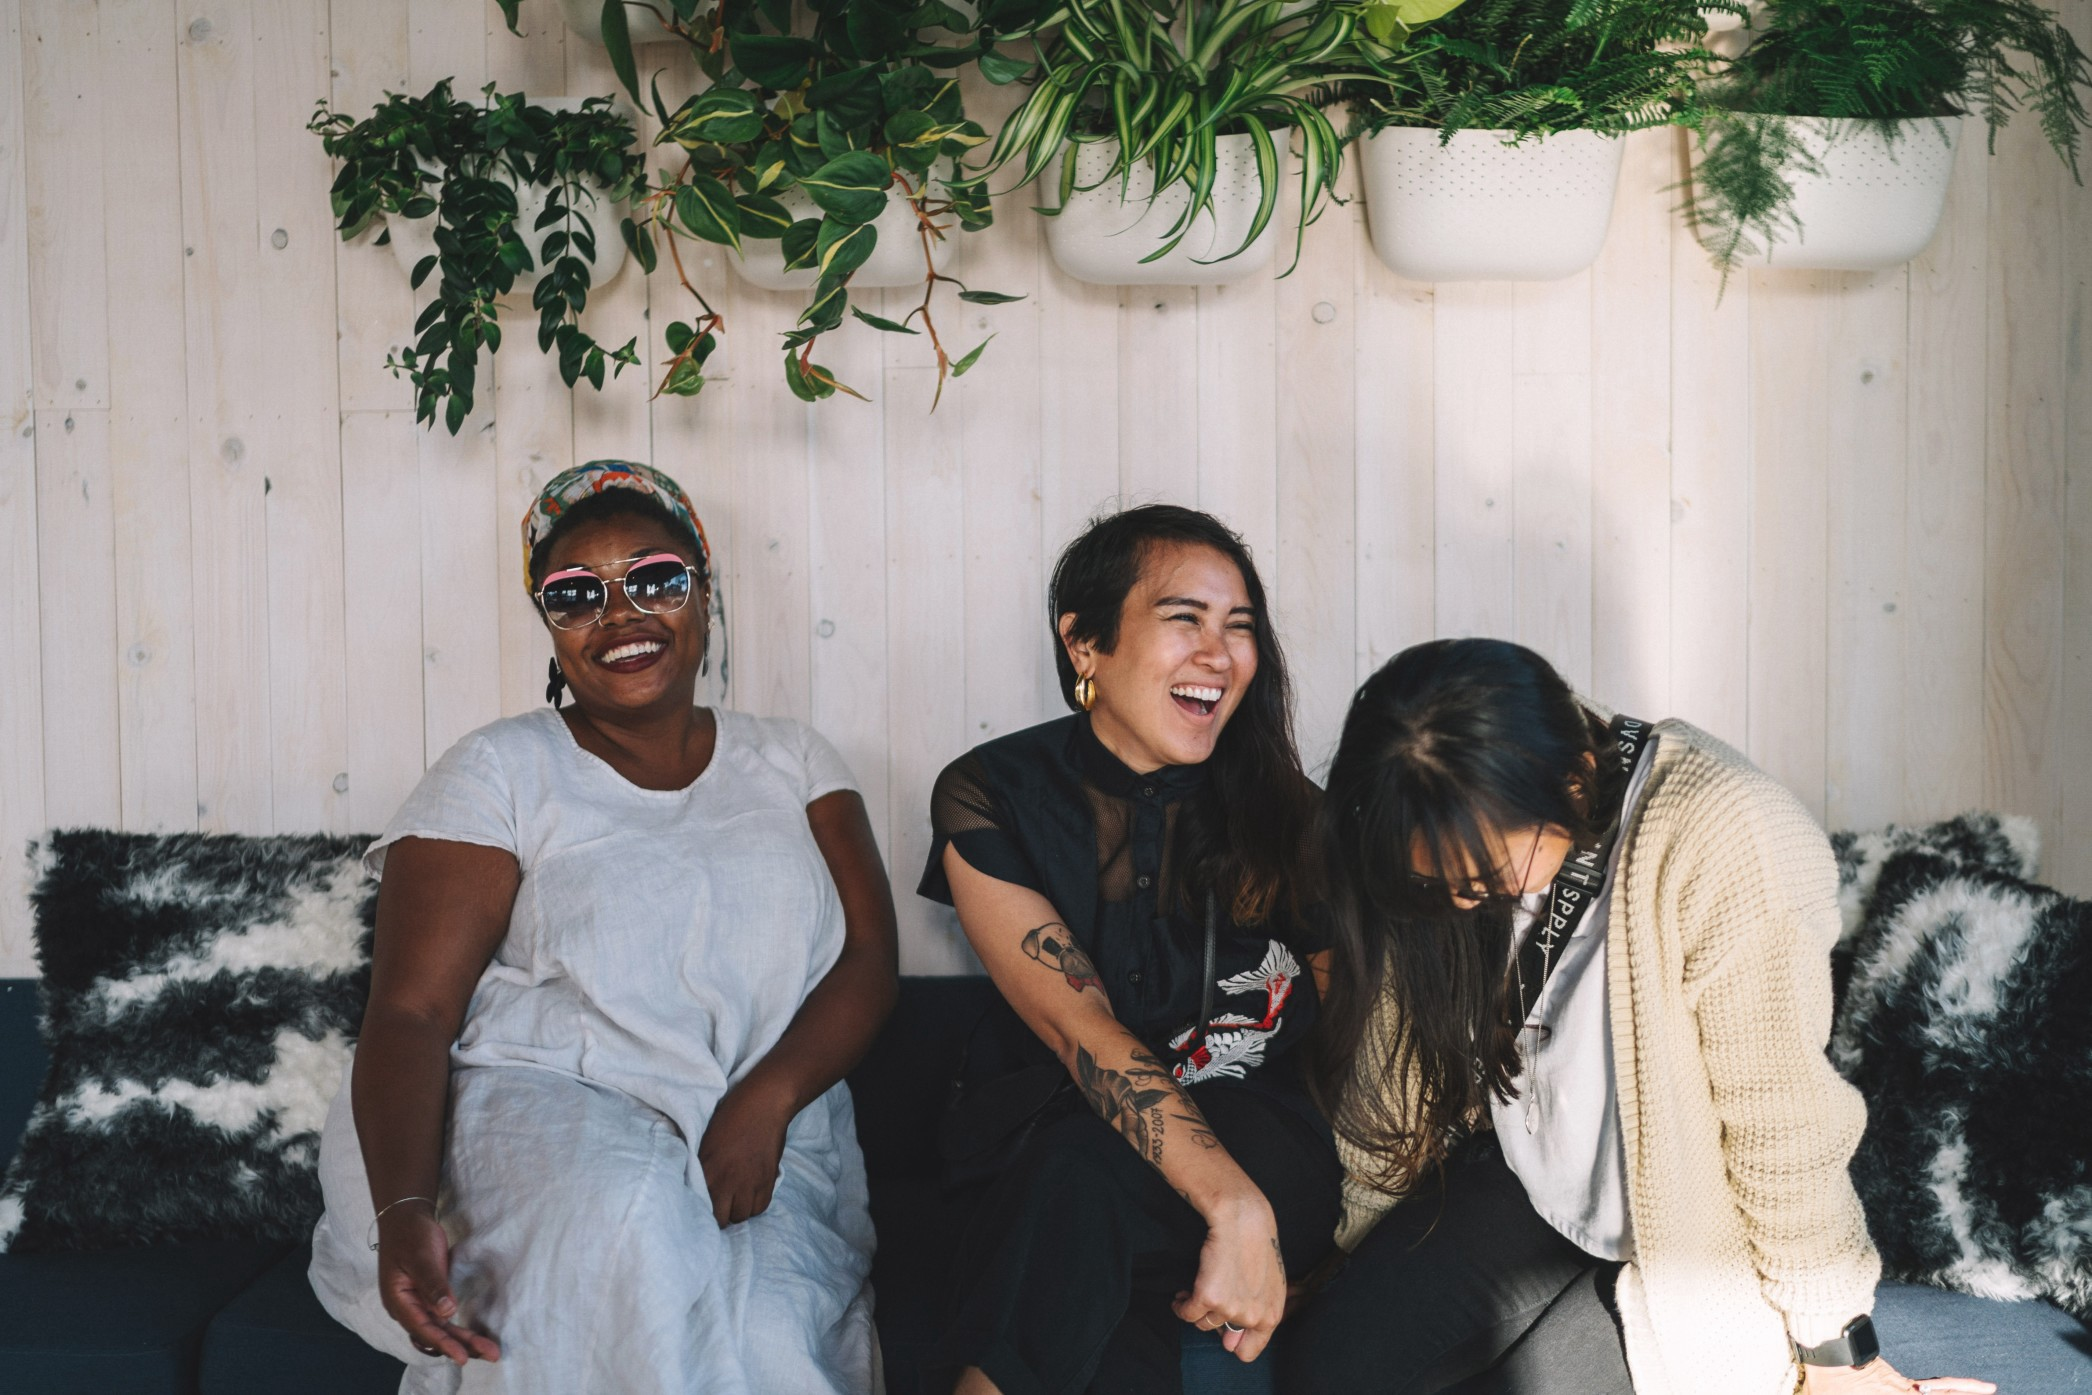 Three women laugh together in the afternoon light.